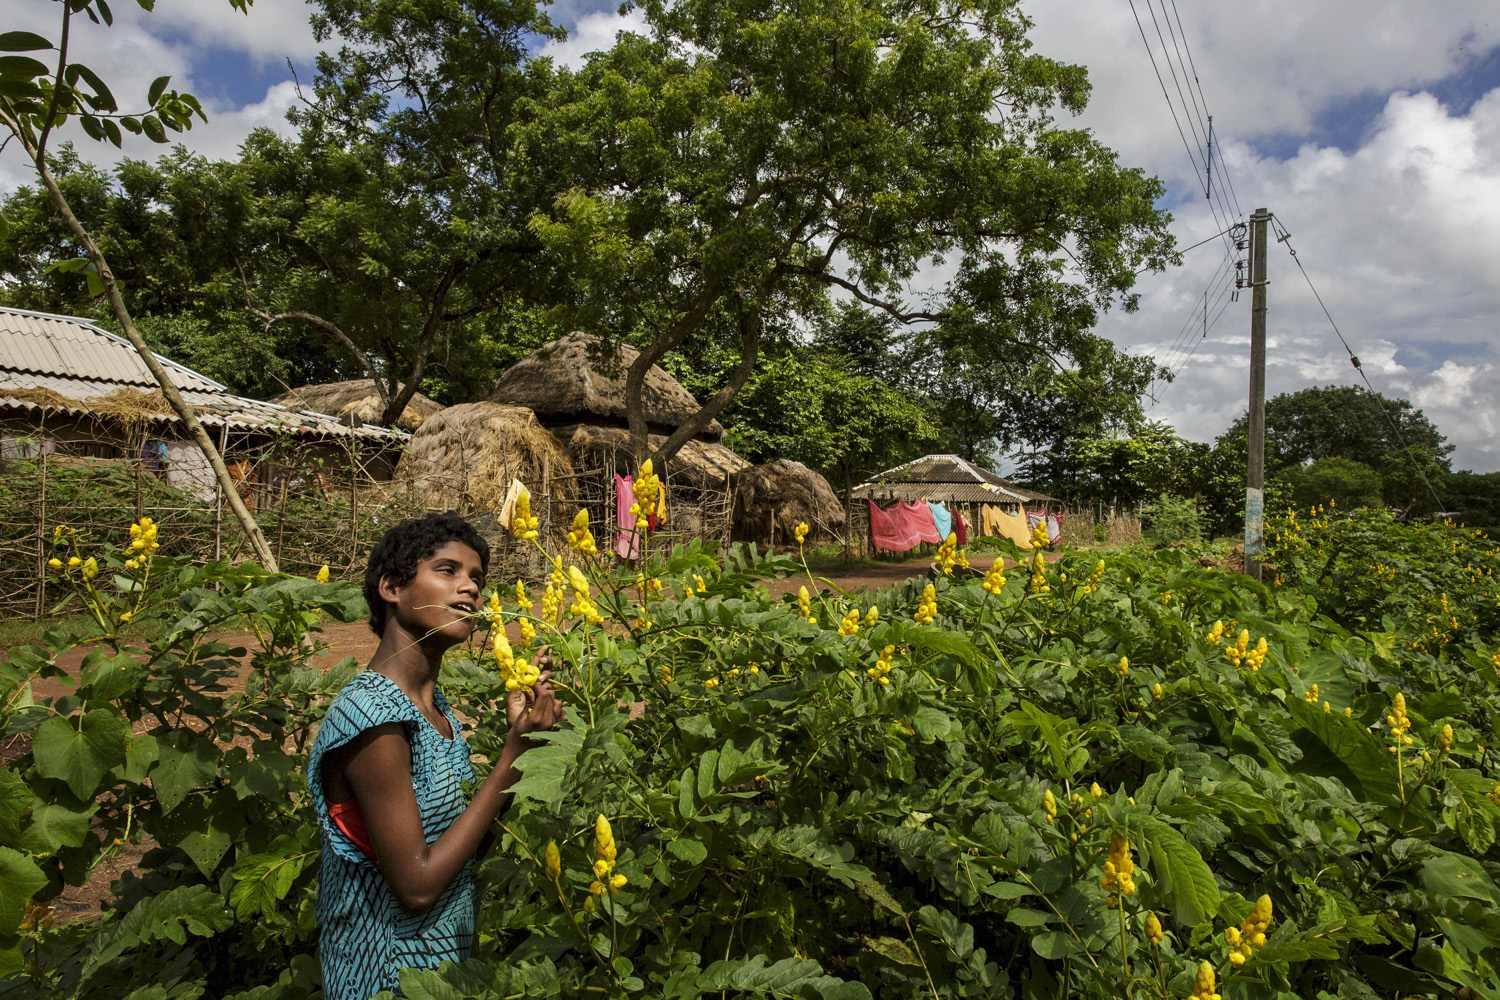 Sonia Singh sniffs flowers close to her home, Oct. 21, 2013 in West Bengal, India.